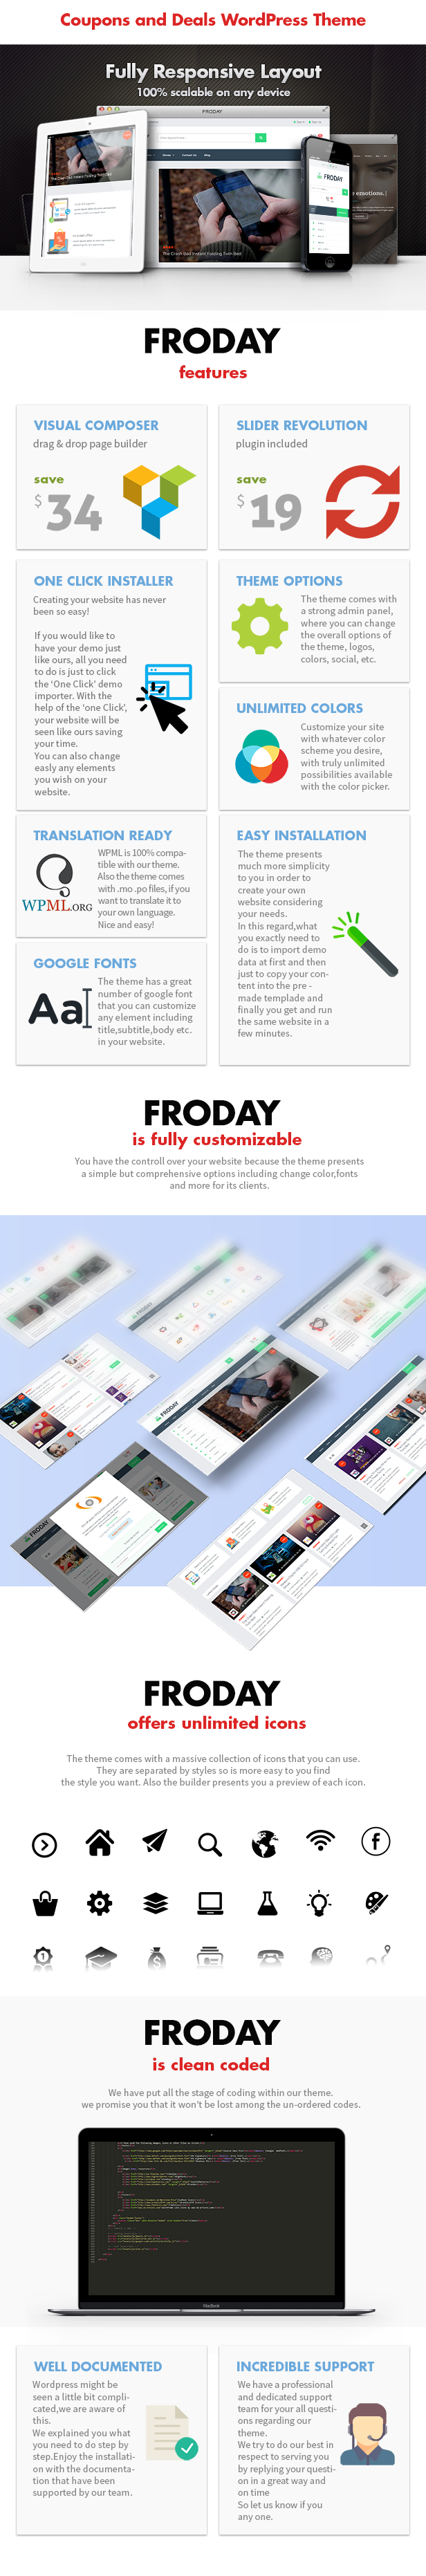 Froday – Coupons and Deals WordPress Theme